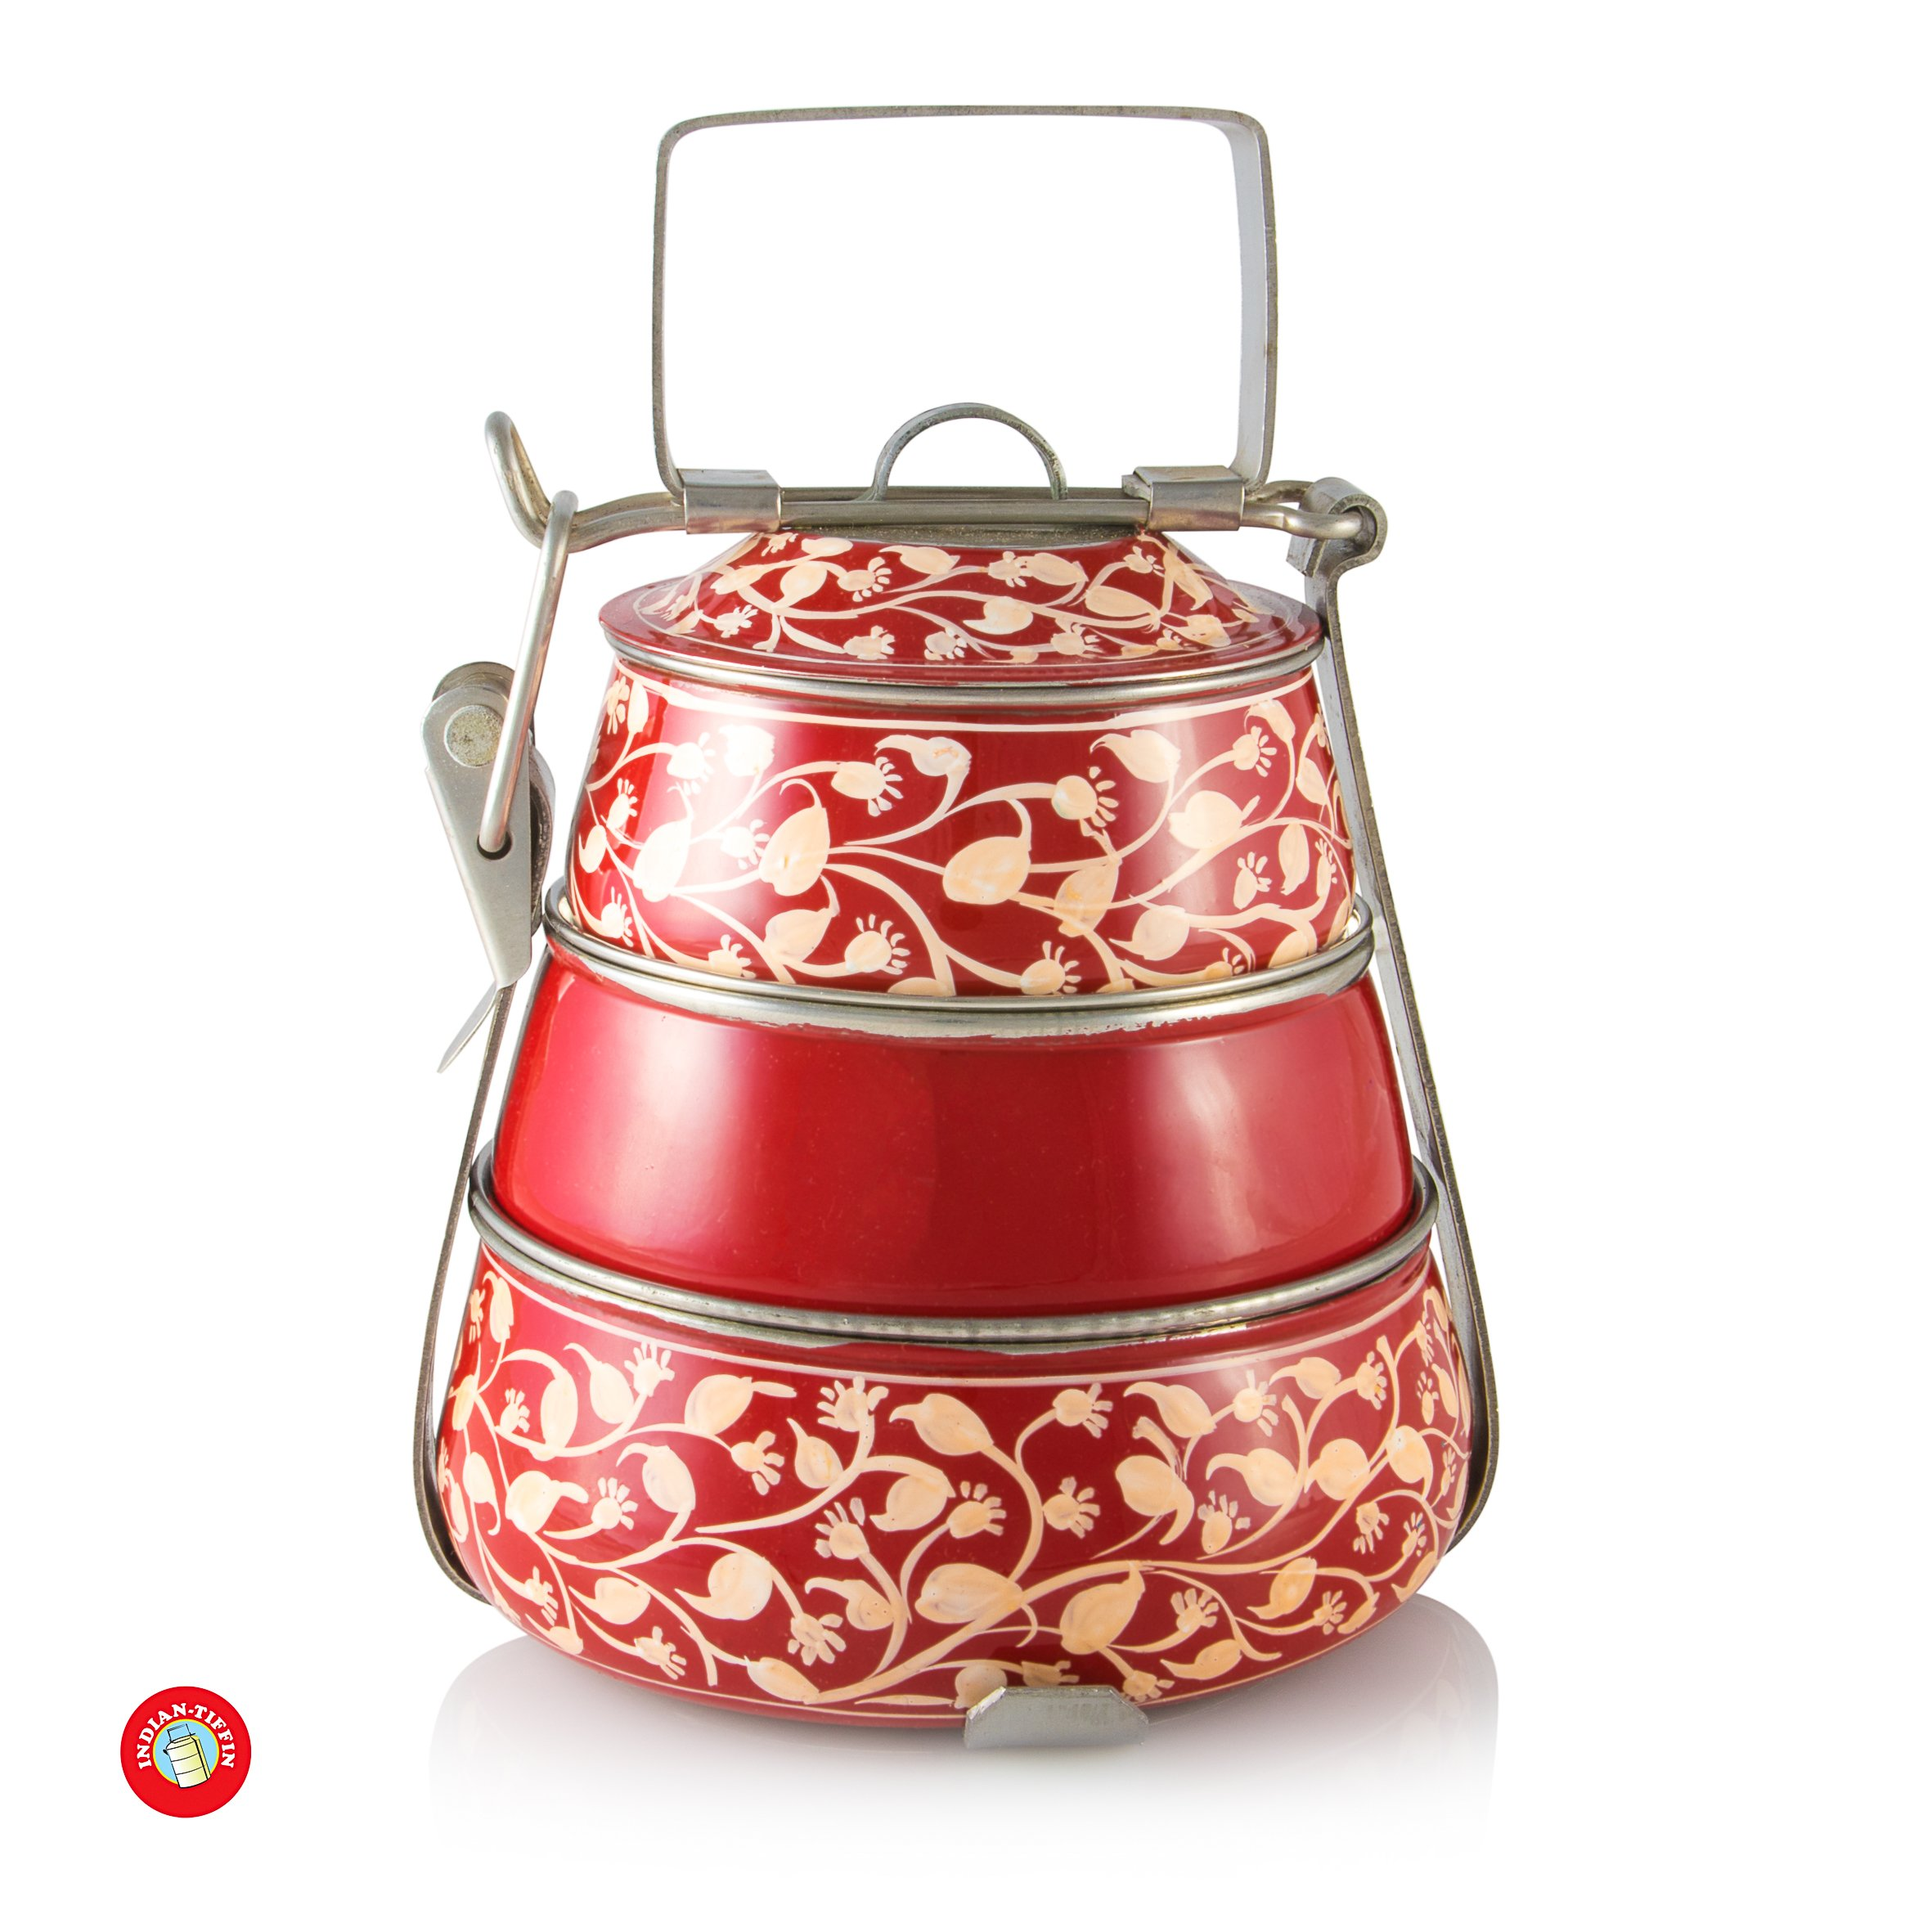 3 Tier Pyramid Red Handpainted Tiffin by Indian-Tiffin